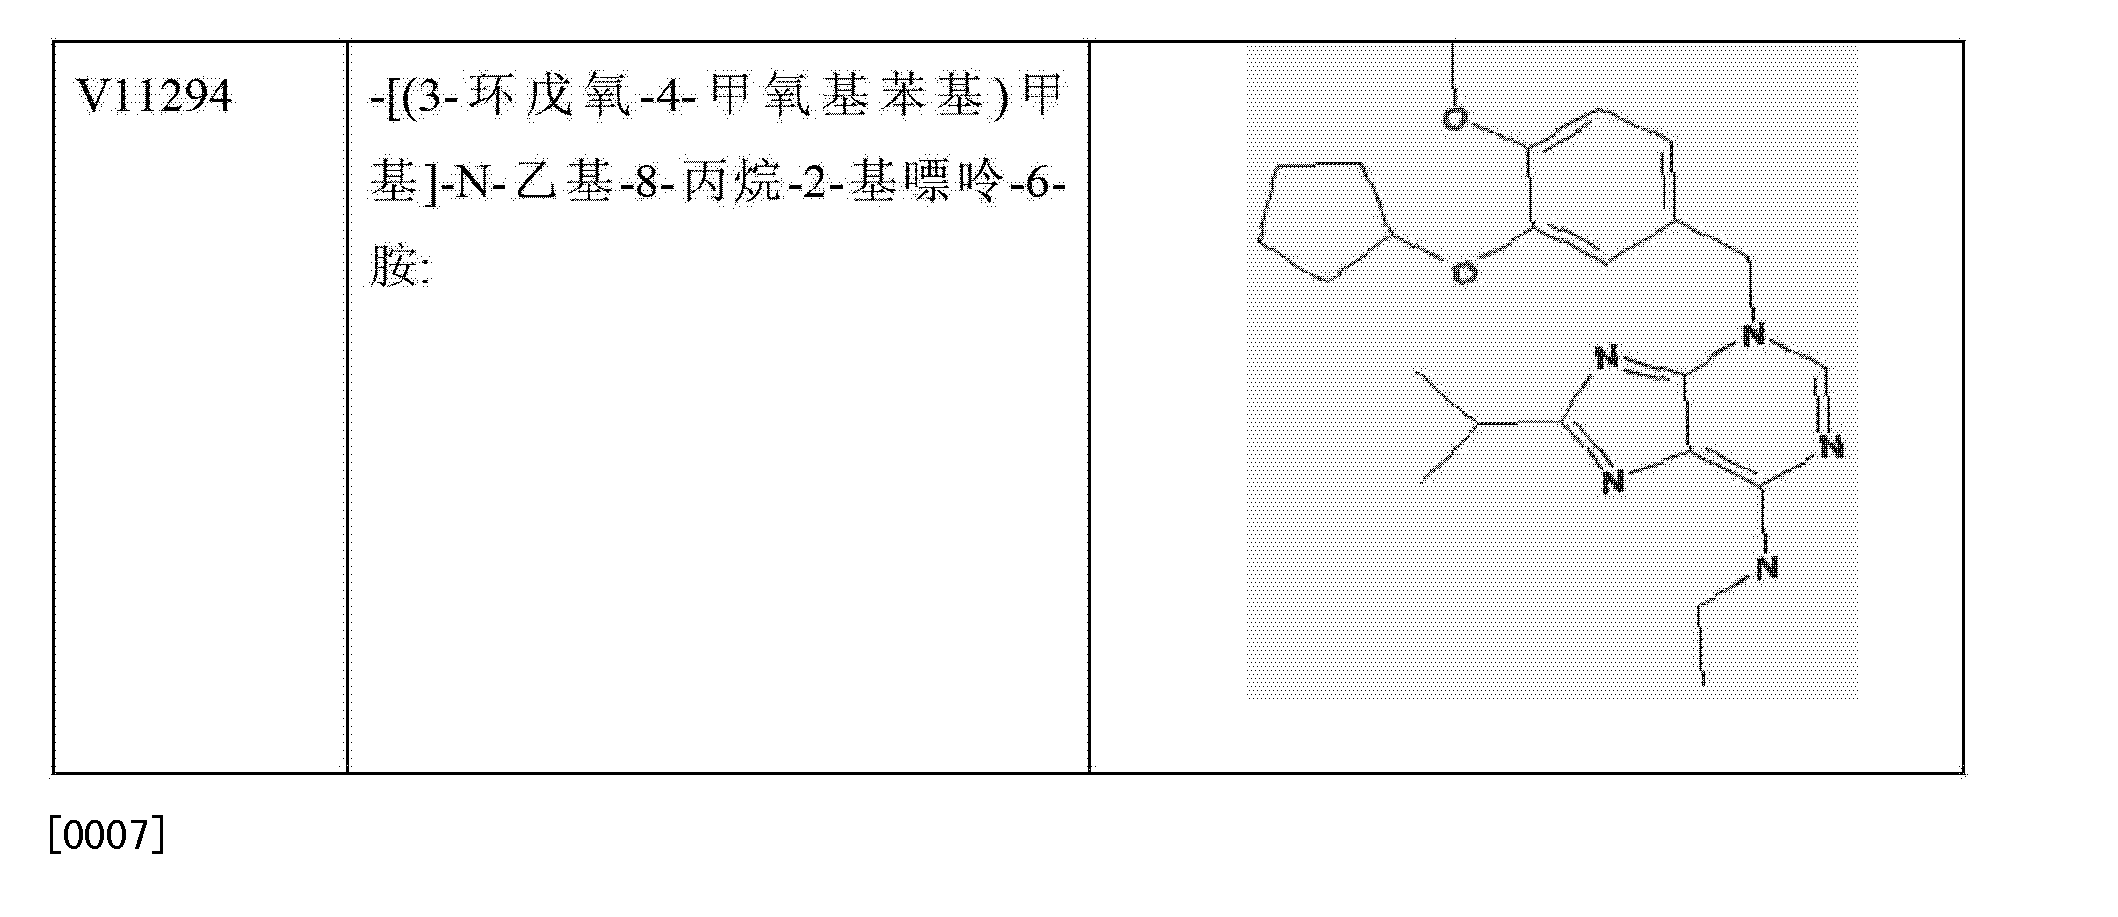 Cn103415286a Compounds And Methods For Treating Pain Google Patents Diagram Wire Sensor Cdp 2 Snow Figure Cn103415286ad00081